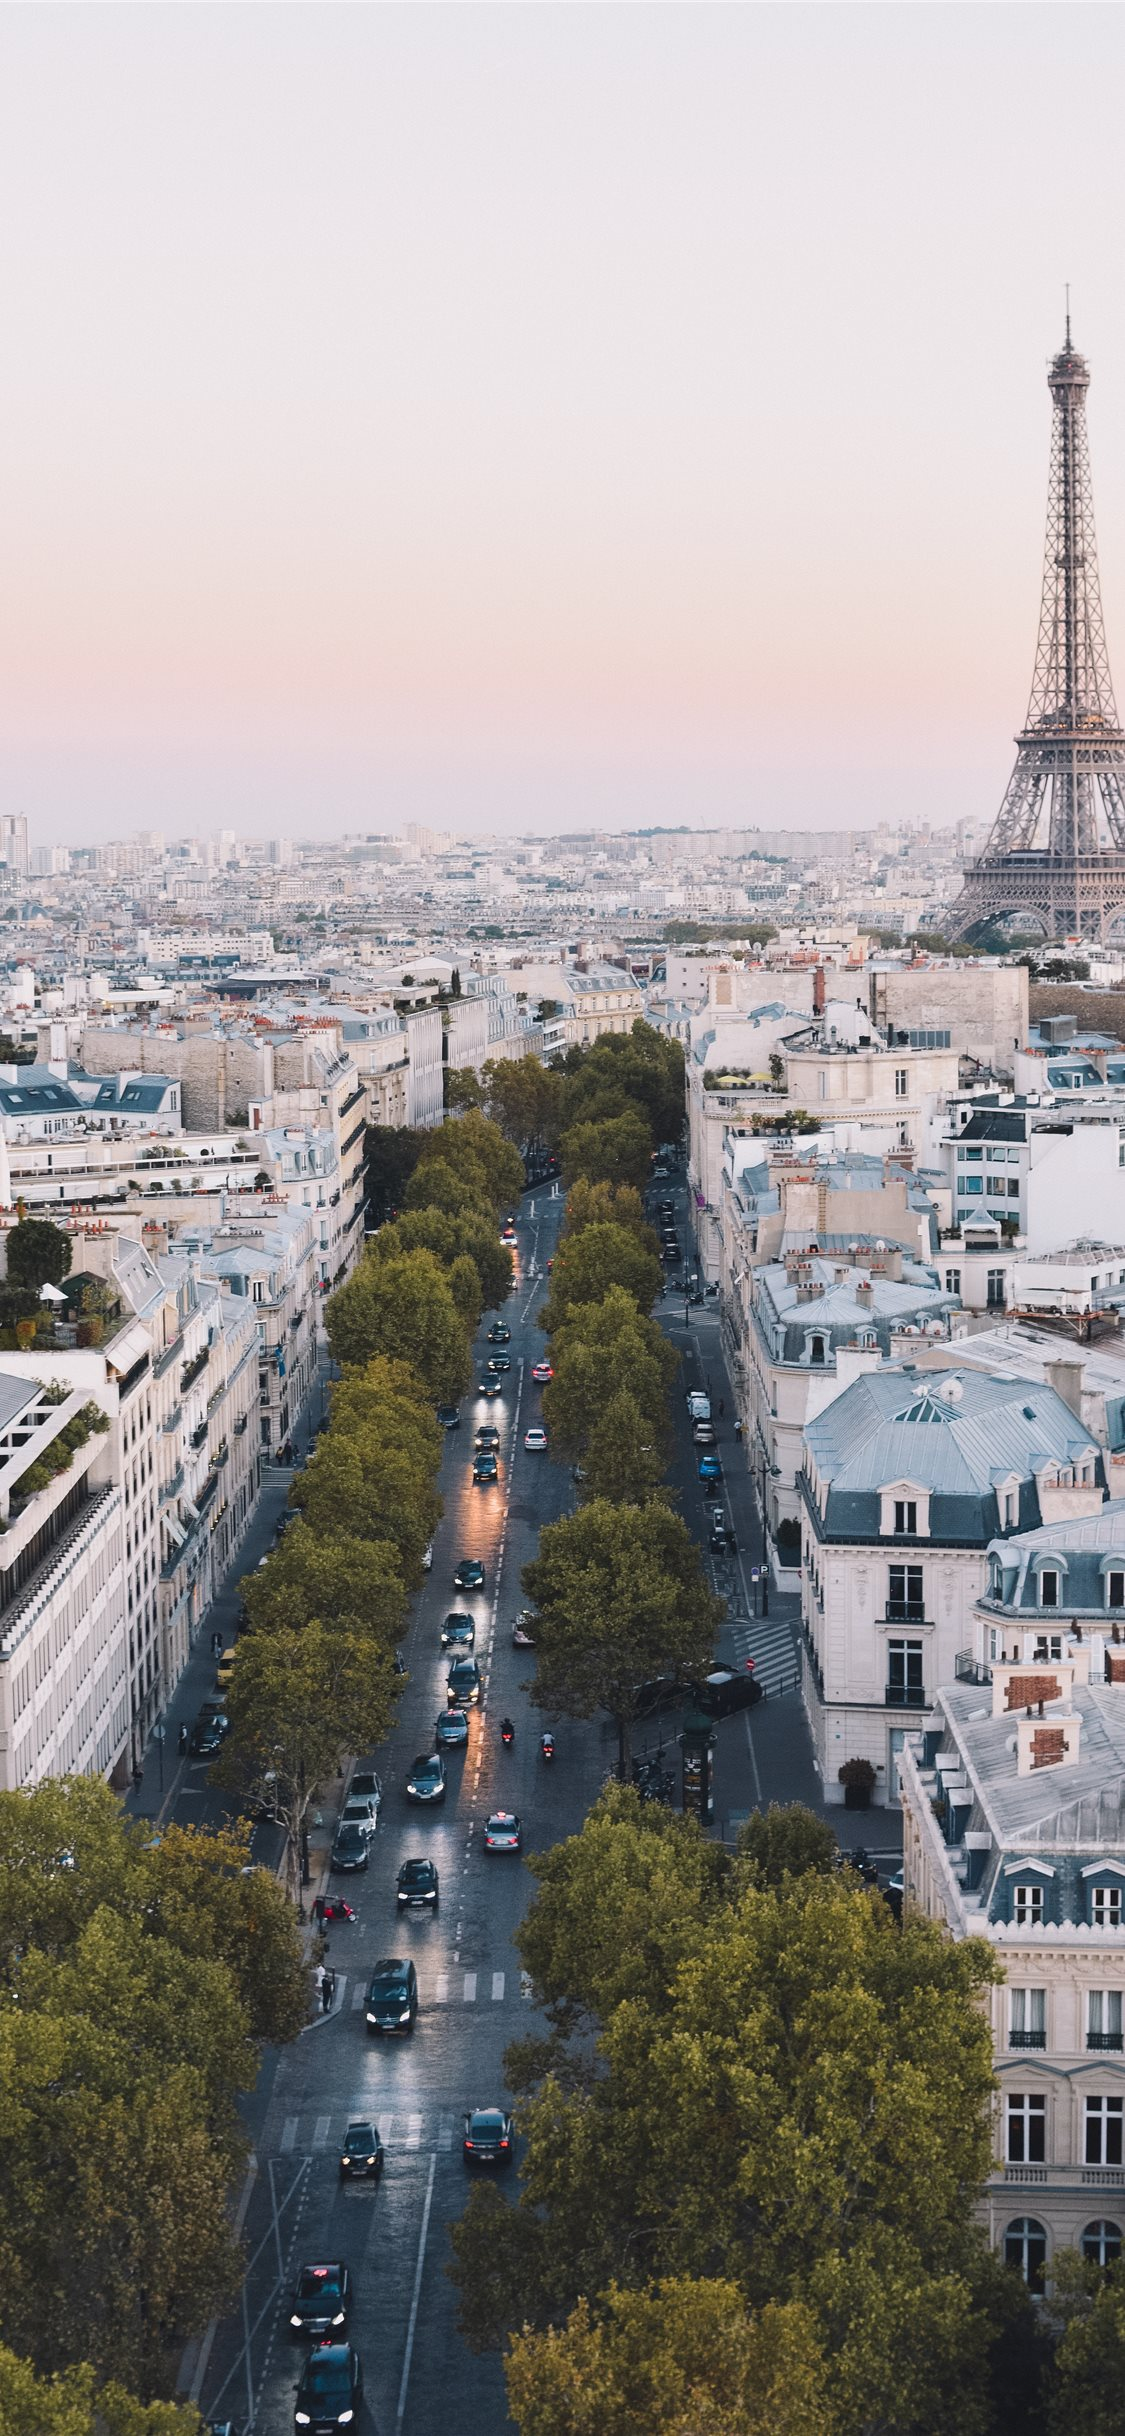 Paris France Iphone X Wallpapers Free Download